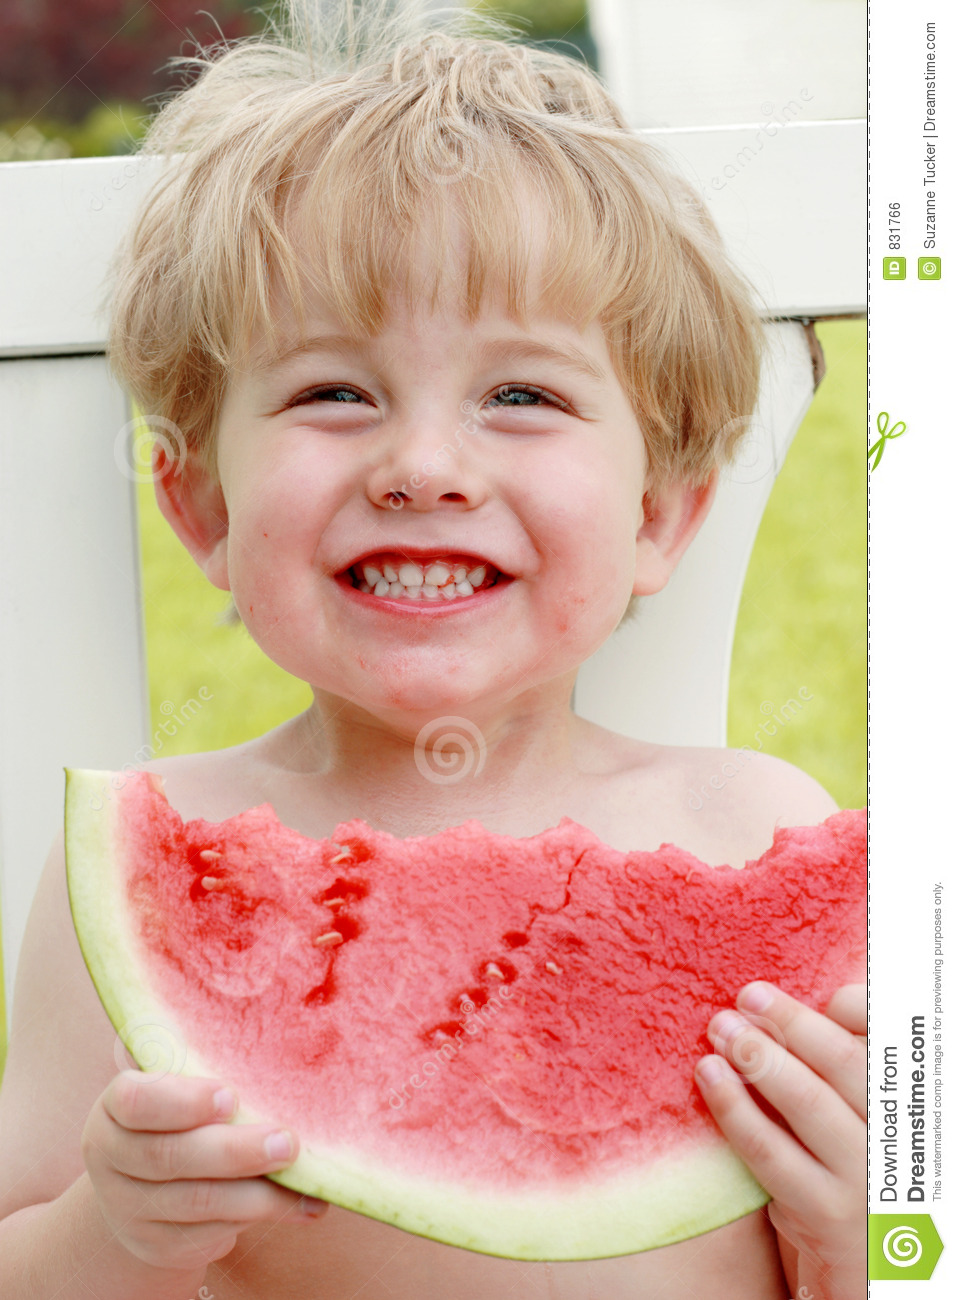 Happiness is a slice of watermelon